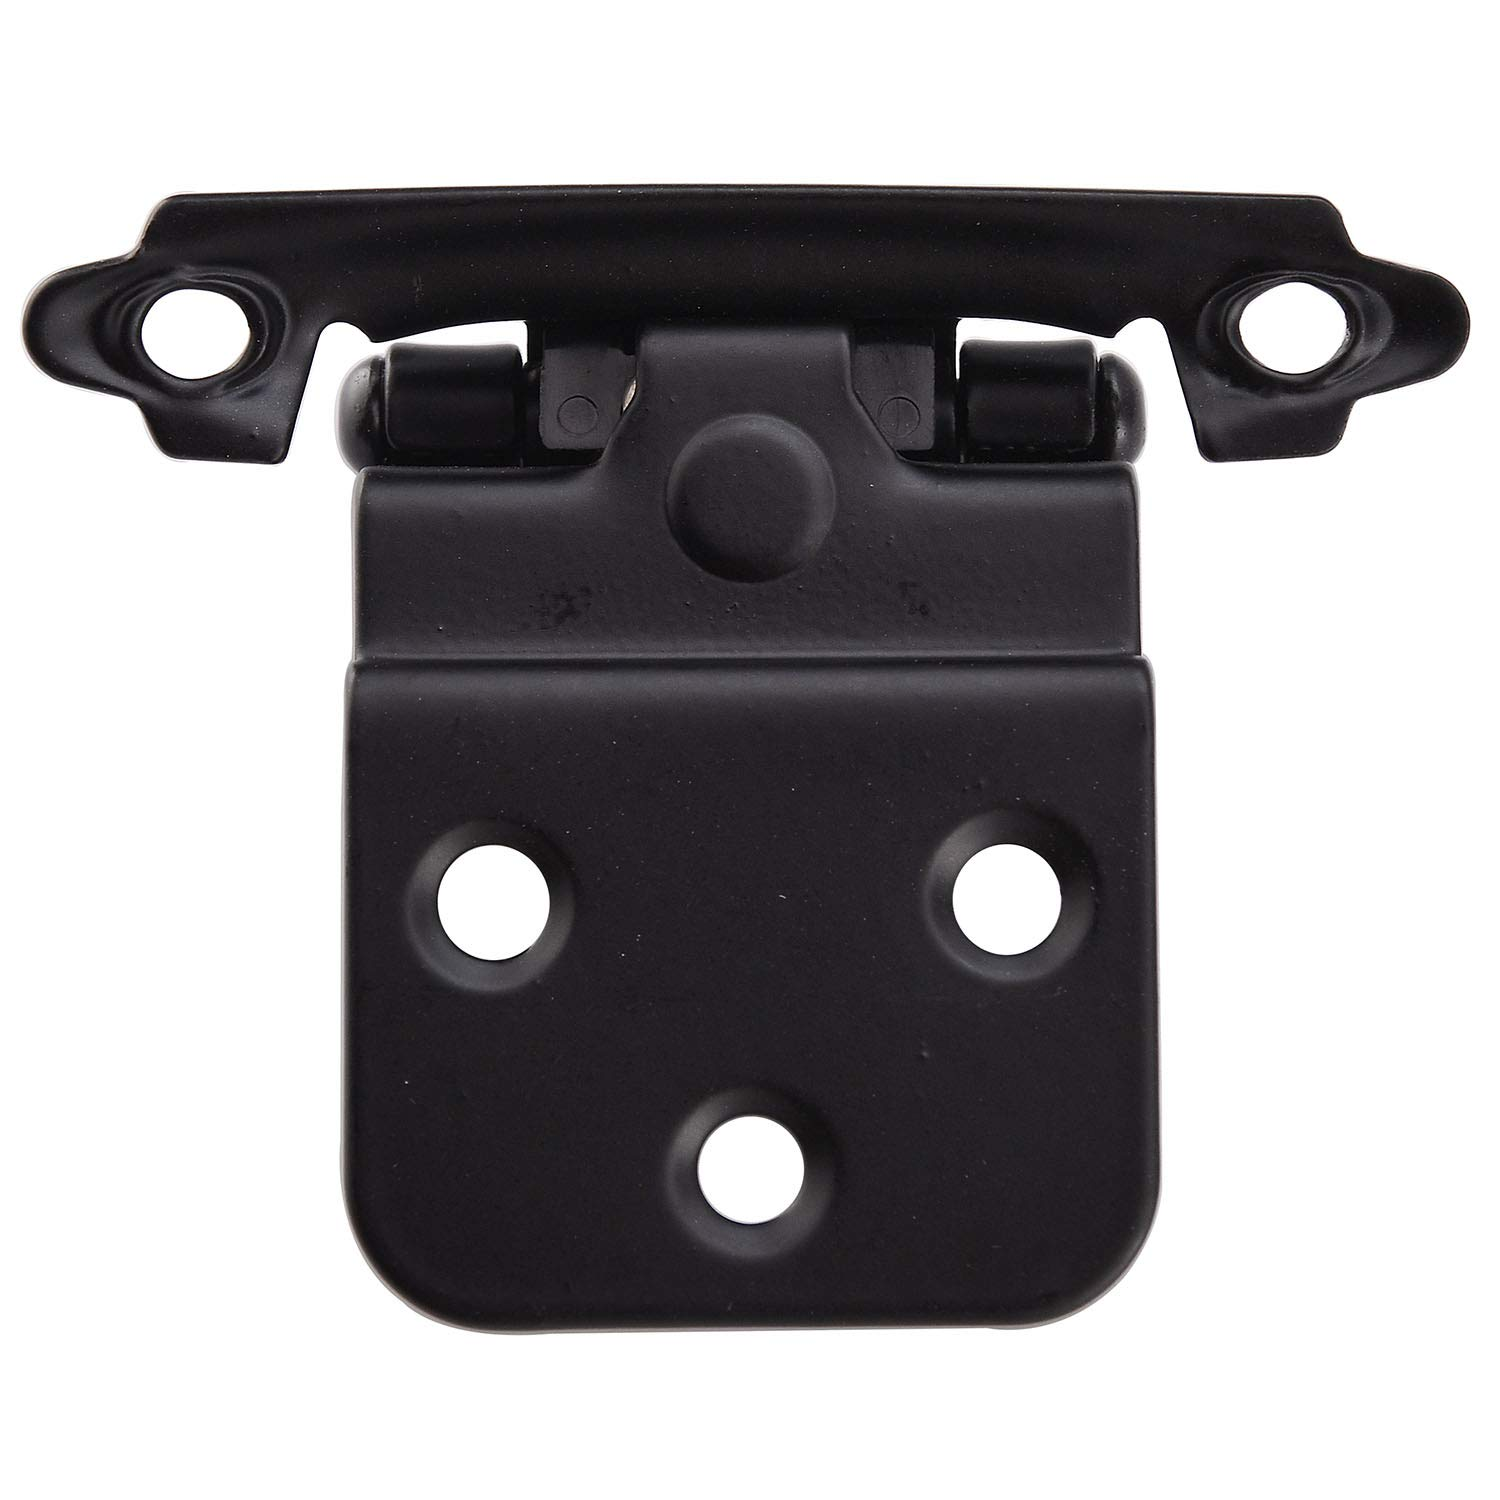 KINGO HOME Face Mount Self Closing Black 3/8'' Inset Cabinet Hinges, 20 Pack by KINGO HOME (Image #5)